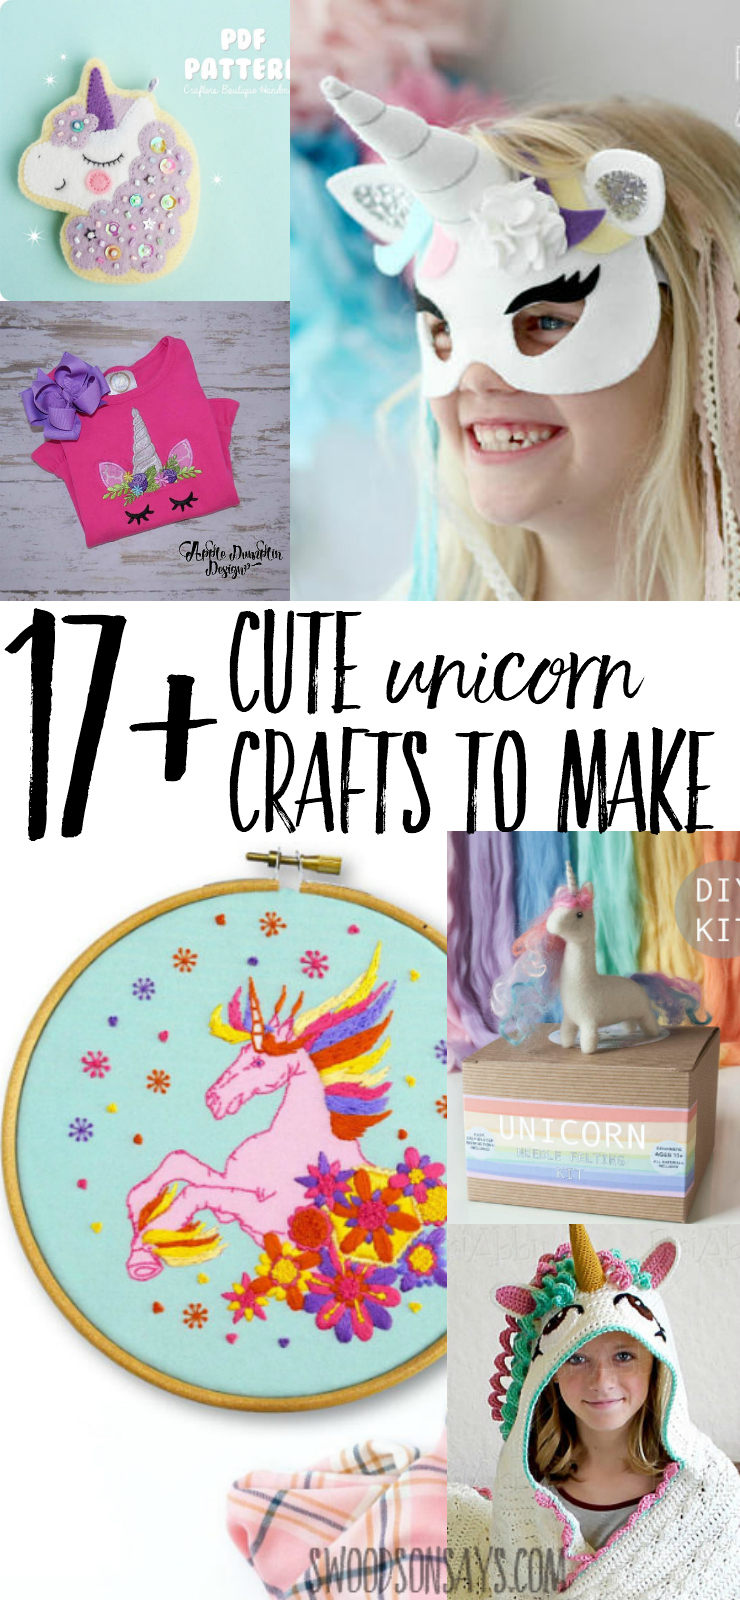 17+ Cute Unicorn Crafts To Make